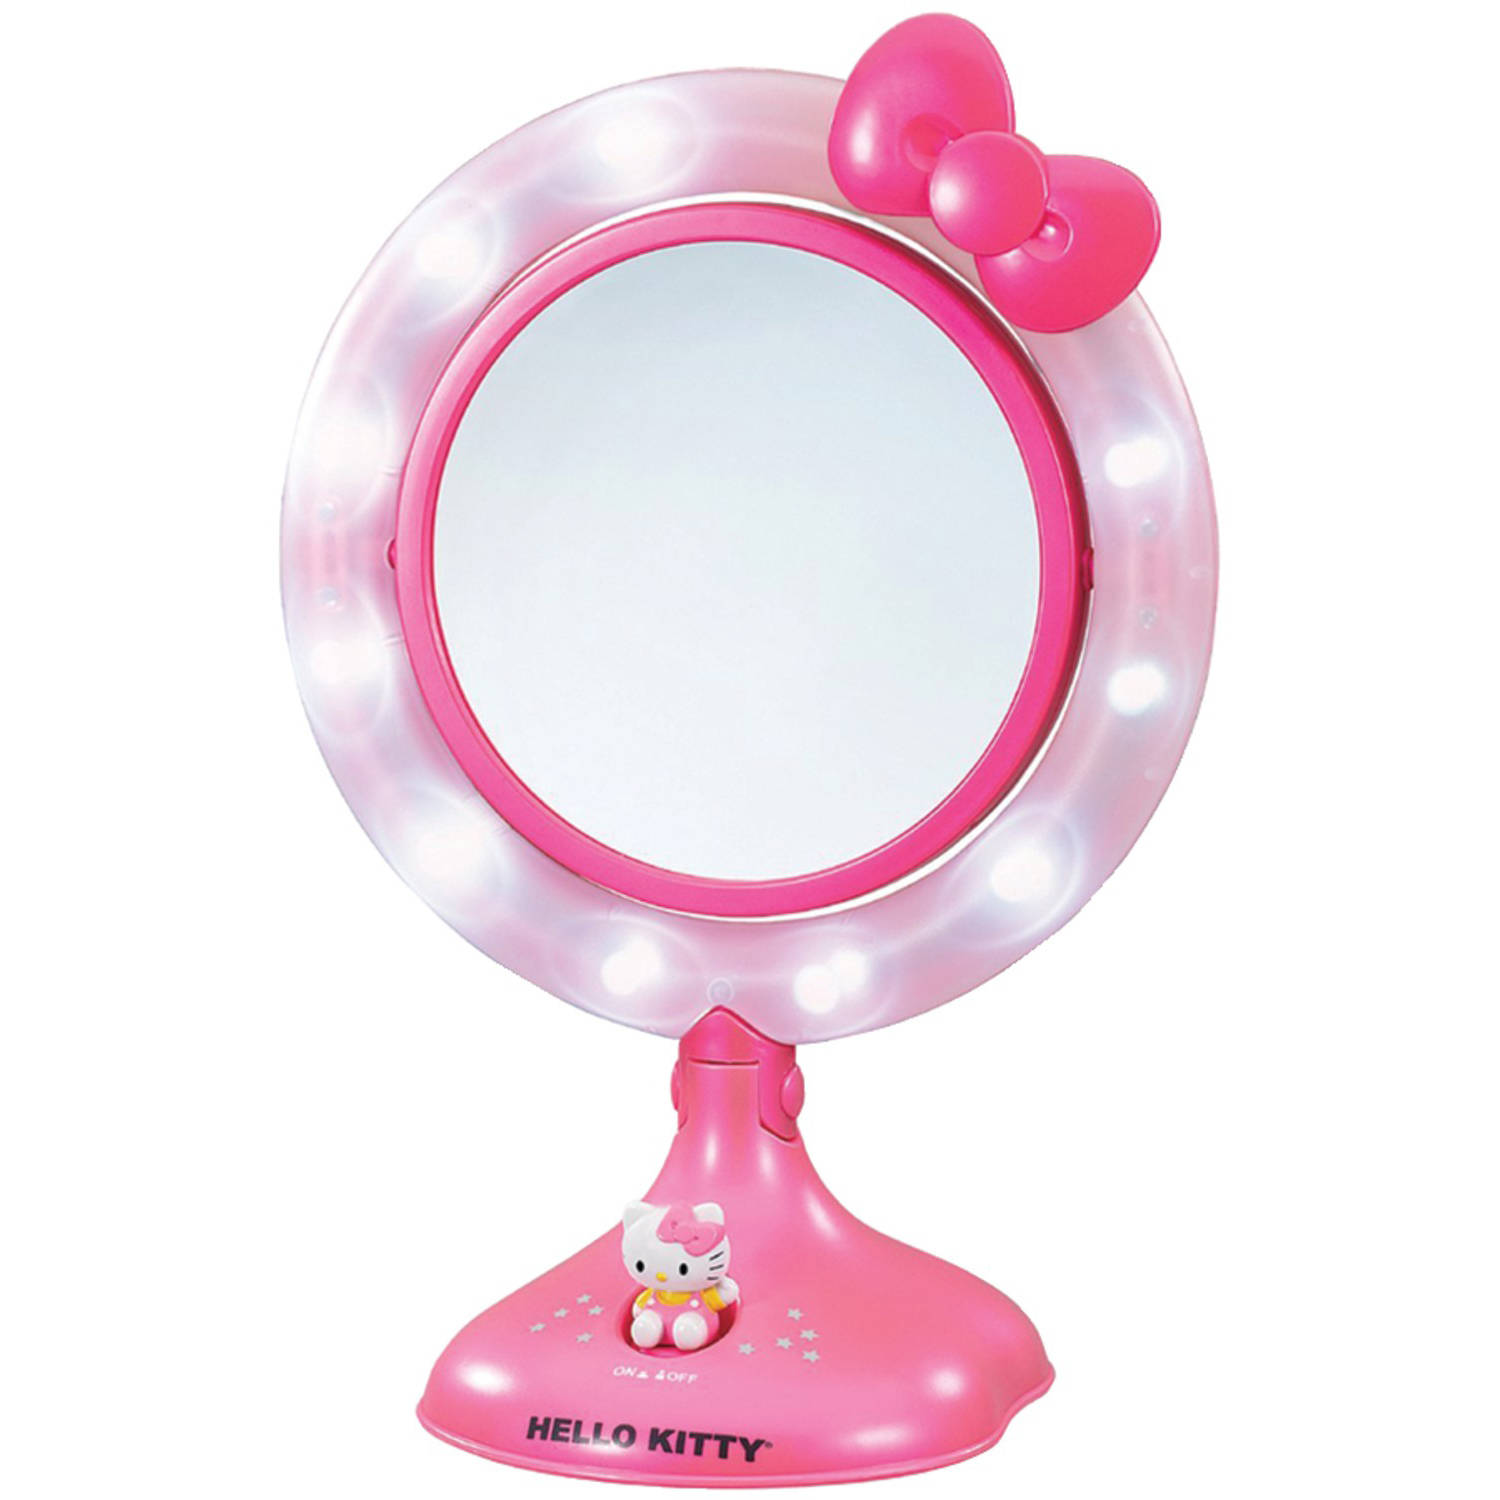 Walmart Vanity Mirror With Lights Metaldetectingandotherstuffidigus - Making a vanity mirror